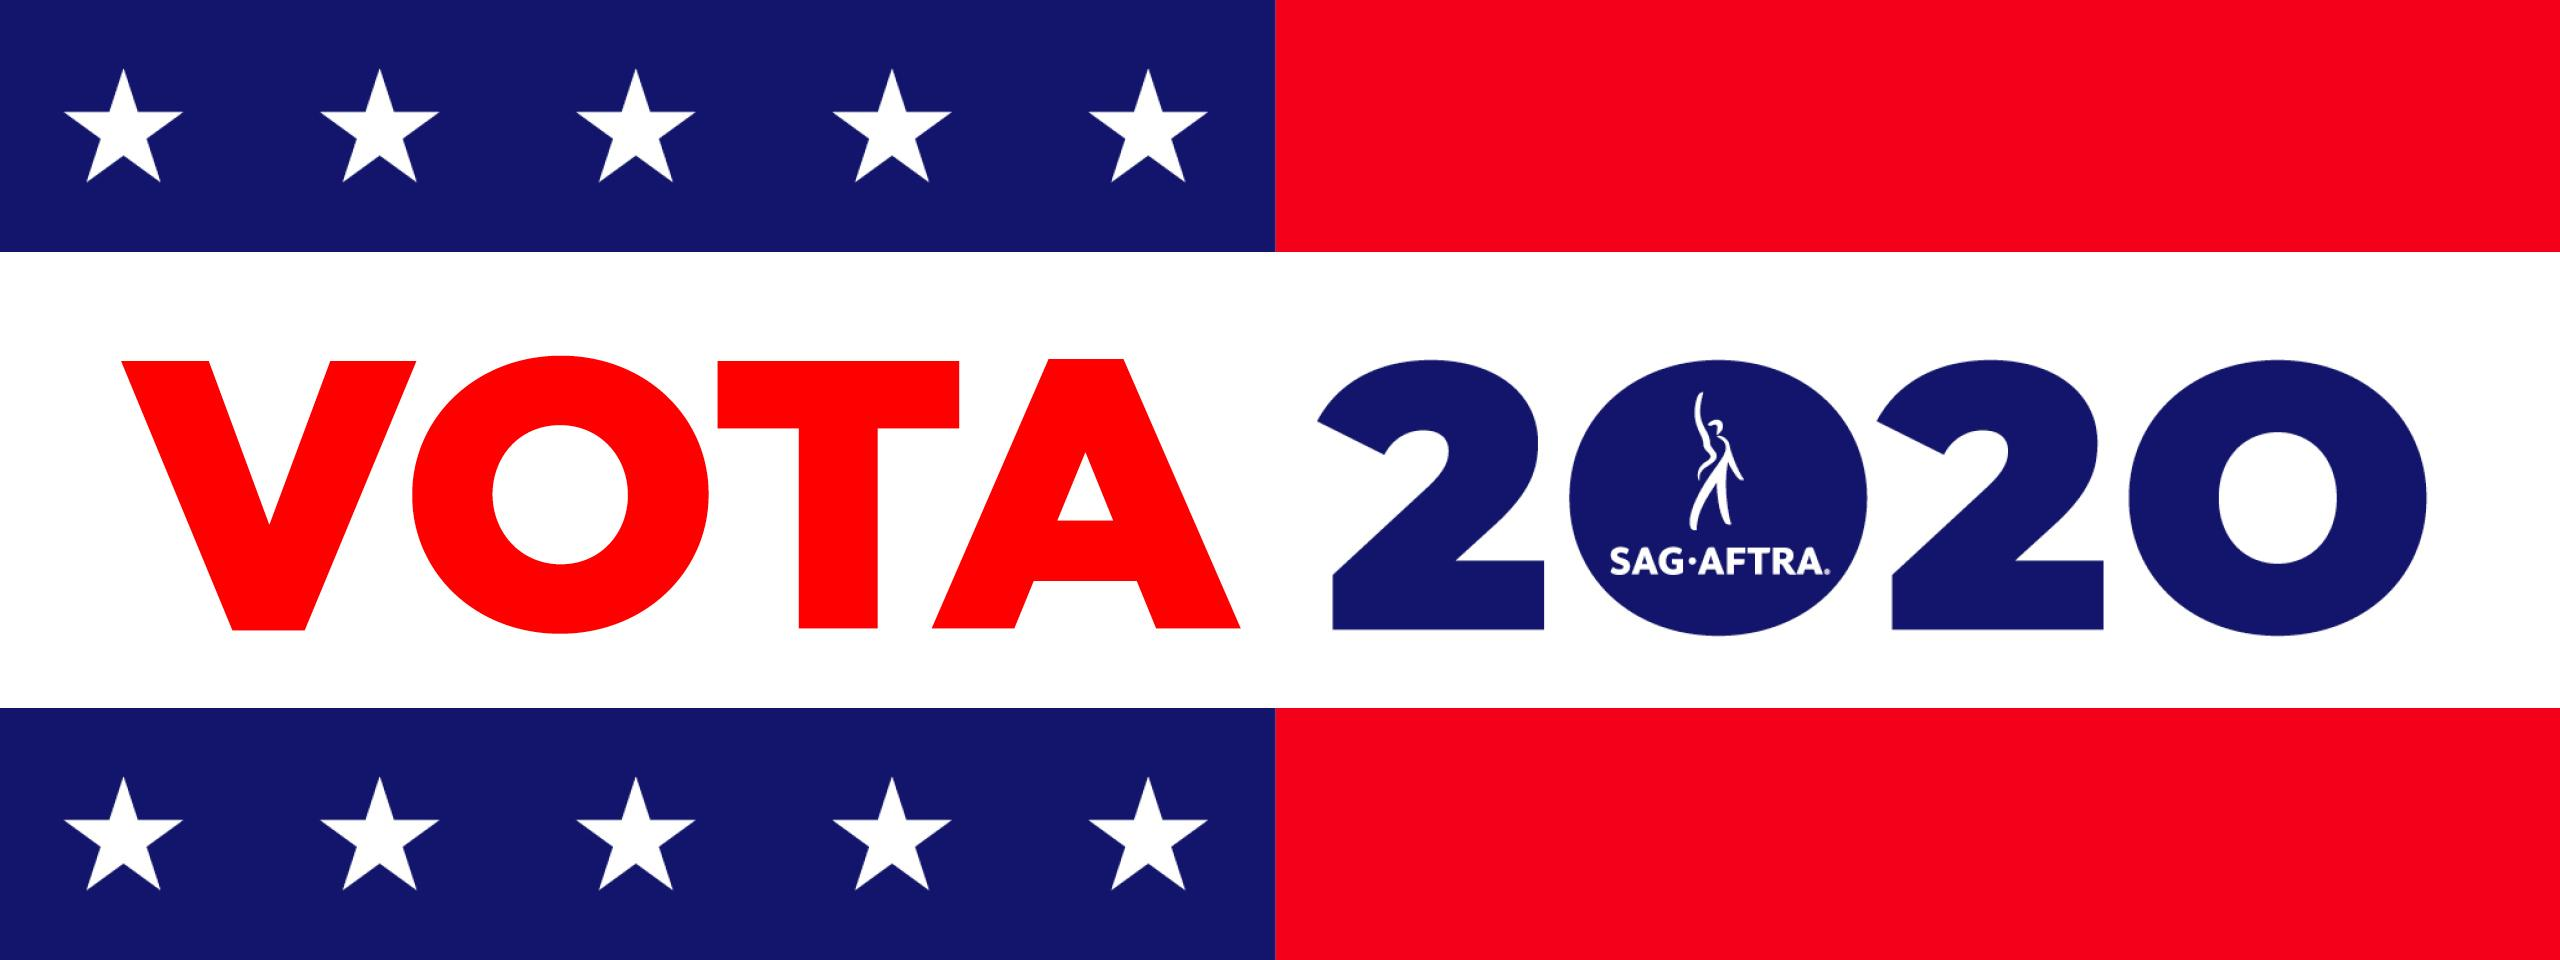 'Vota 2020' in red and blue on a white background